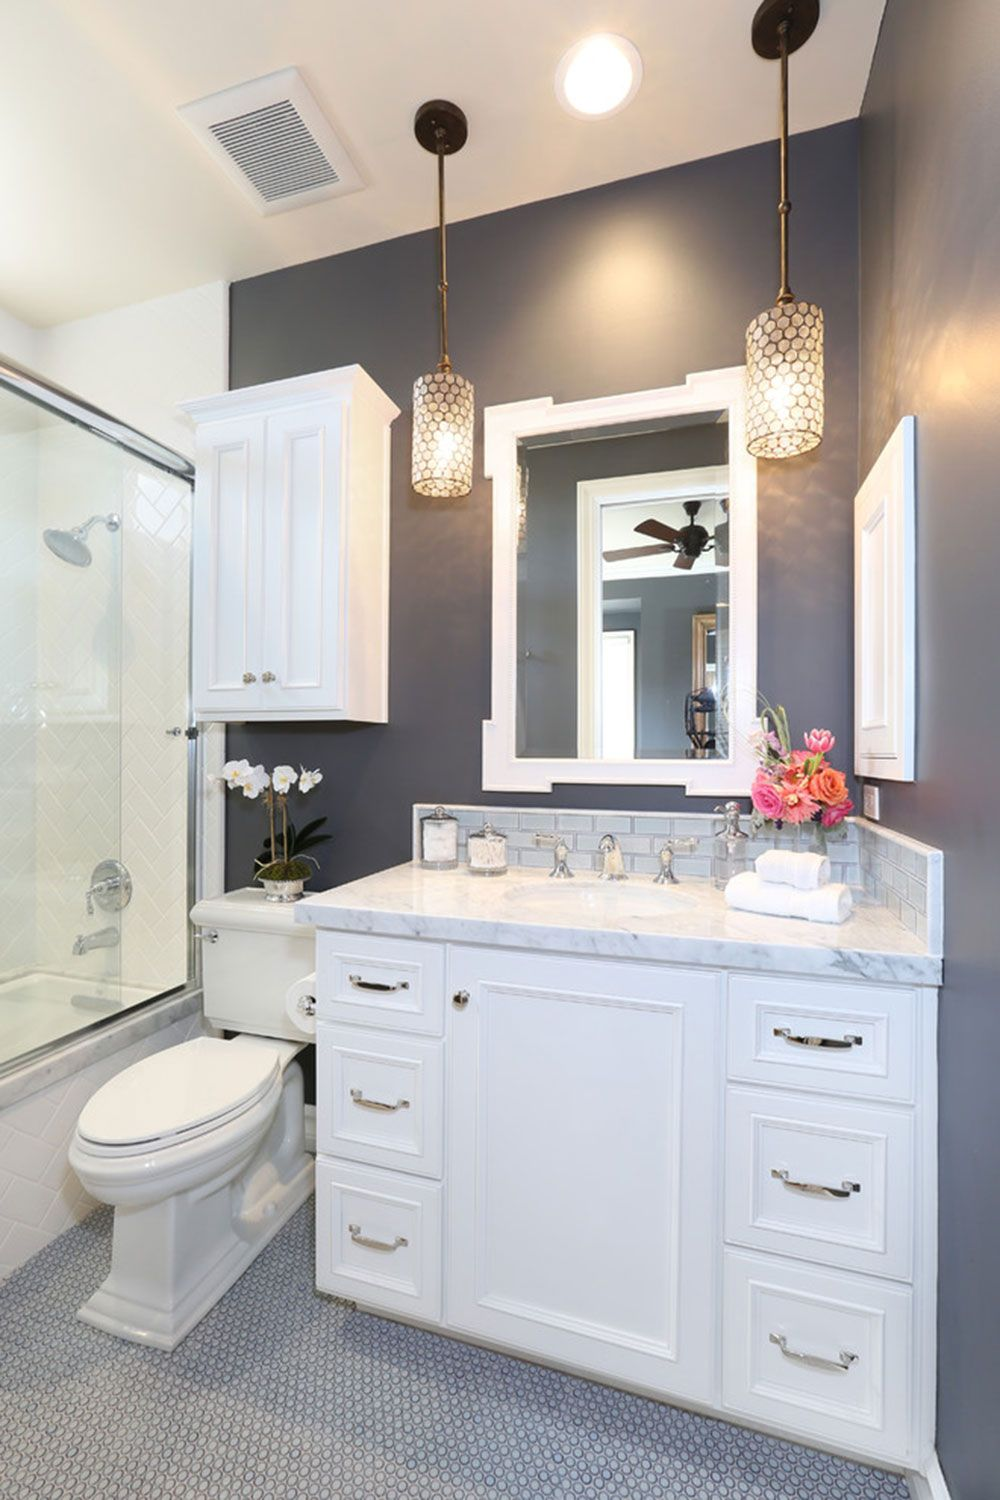 Small Bathroom 20 small bathroom design ideas hgtv How To Make A Bedroom Feel Cozy